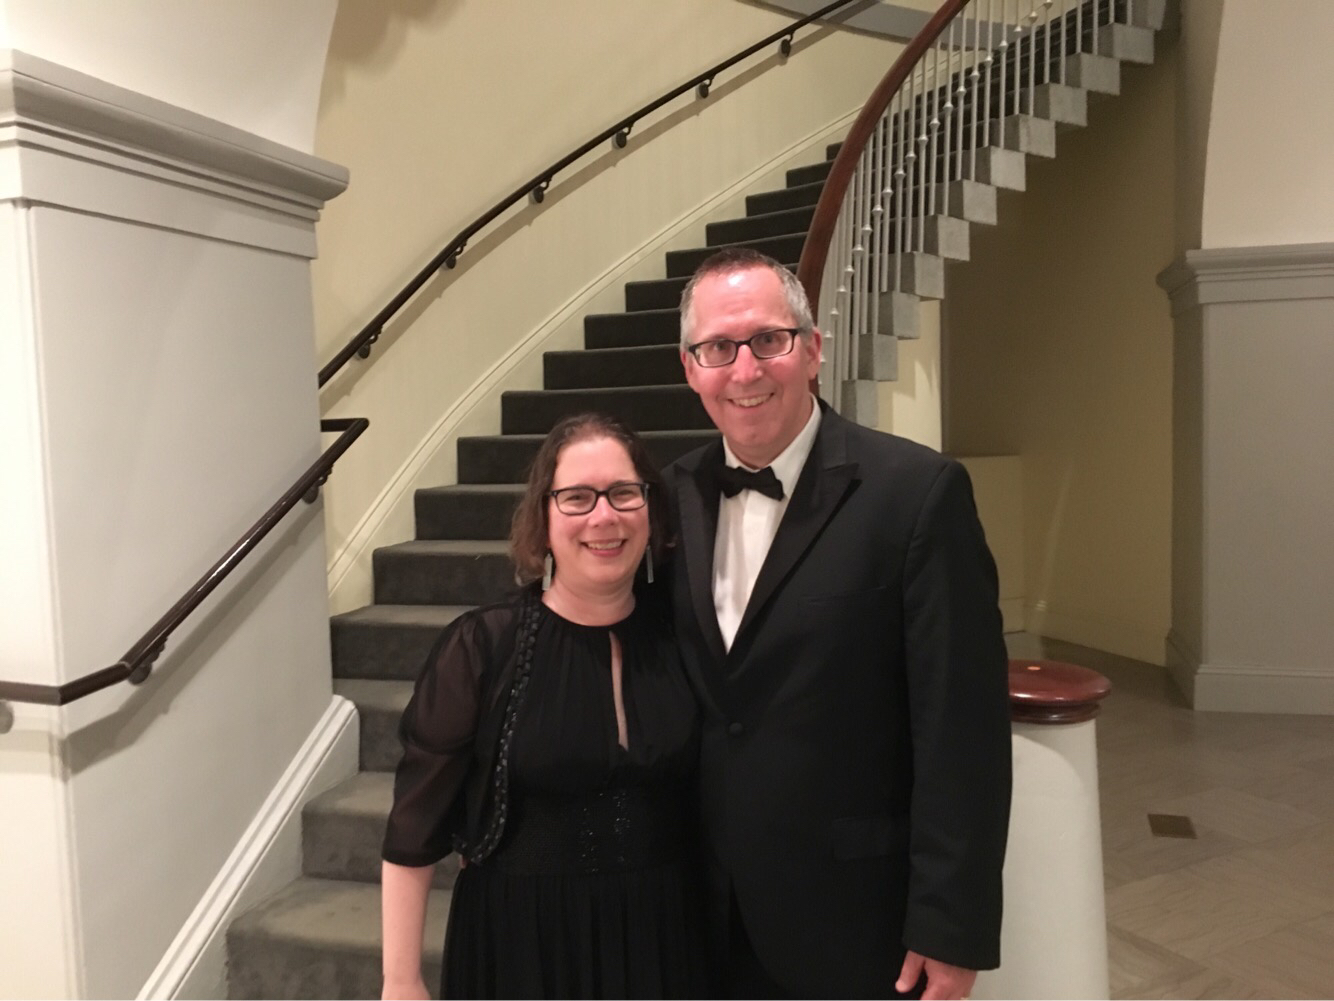 A photo of Professor Robert Francis Murphy and his wife Professor Cathy Murphy.